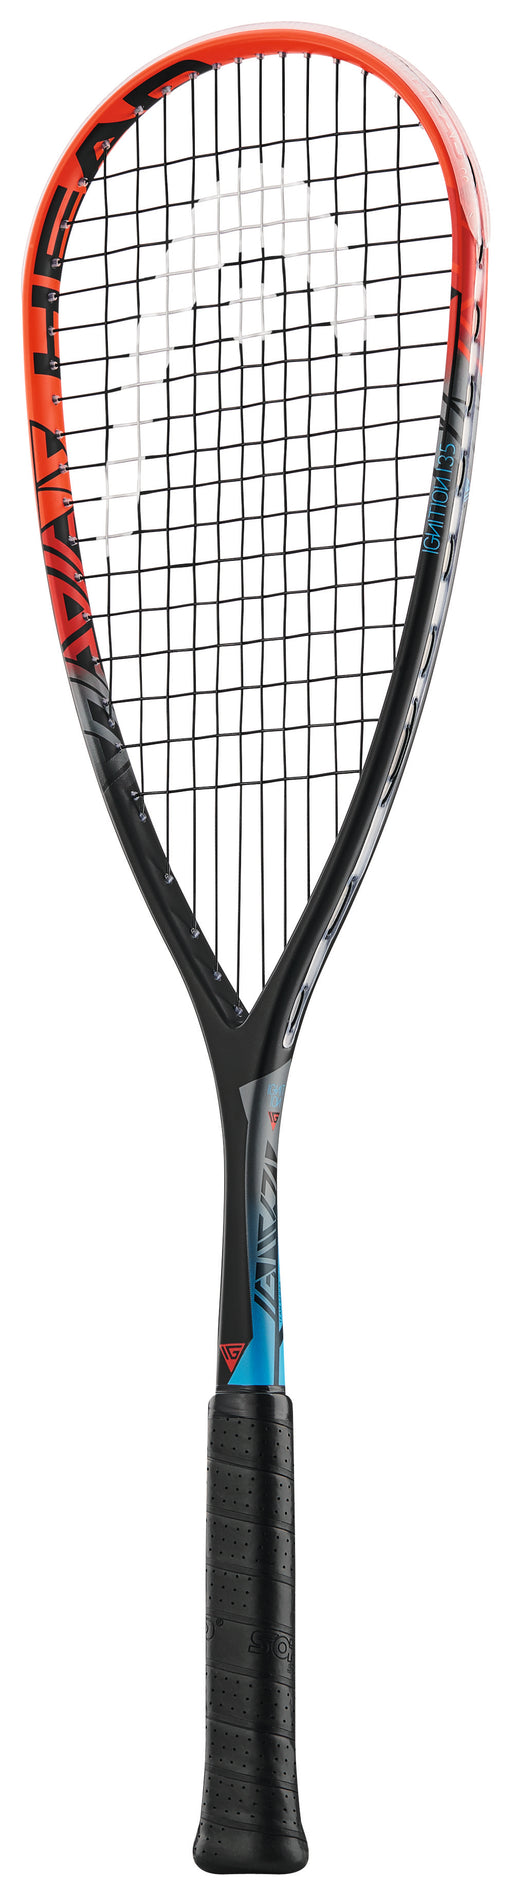 Head Ignition 135 Squash Racquet - atr-sports